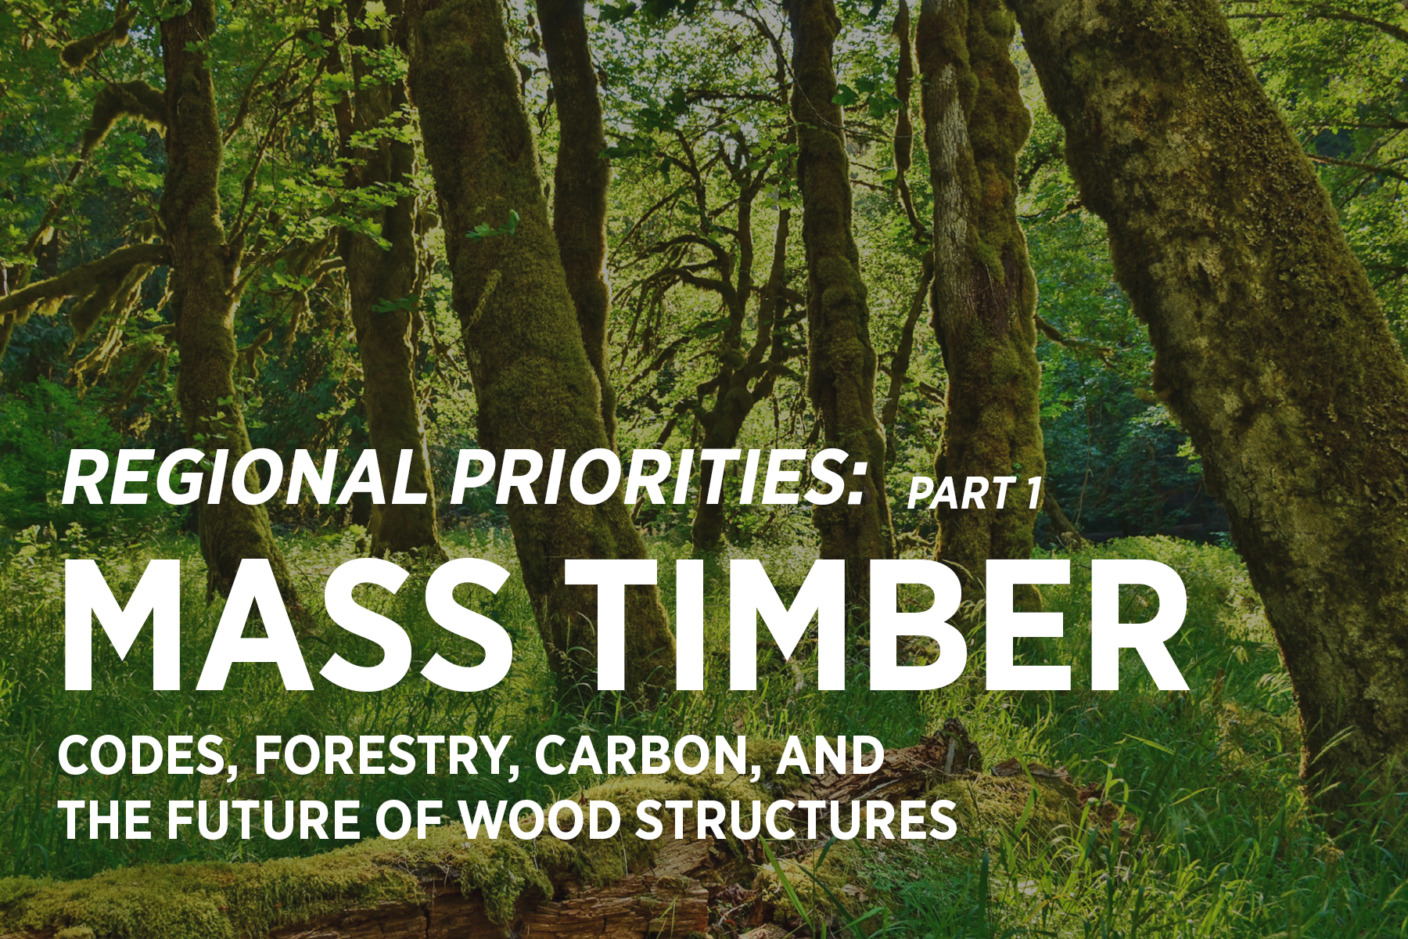 Codes, Forestry, Carbon, and The Future of Wood Structures